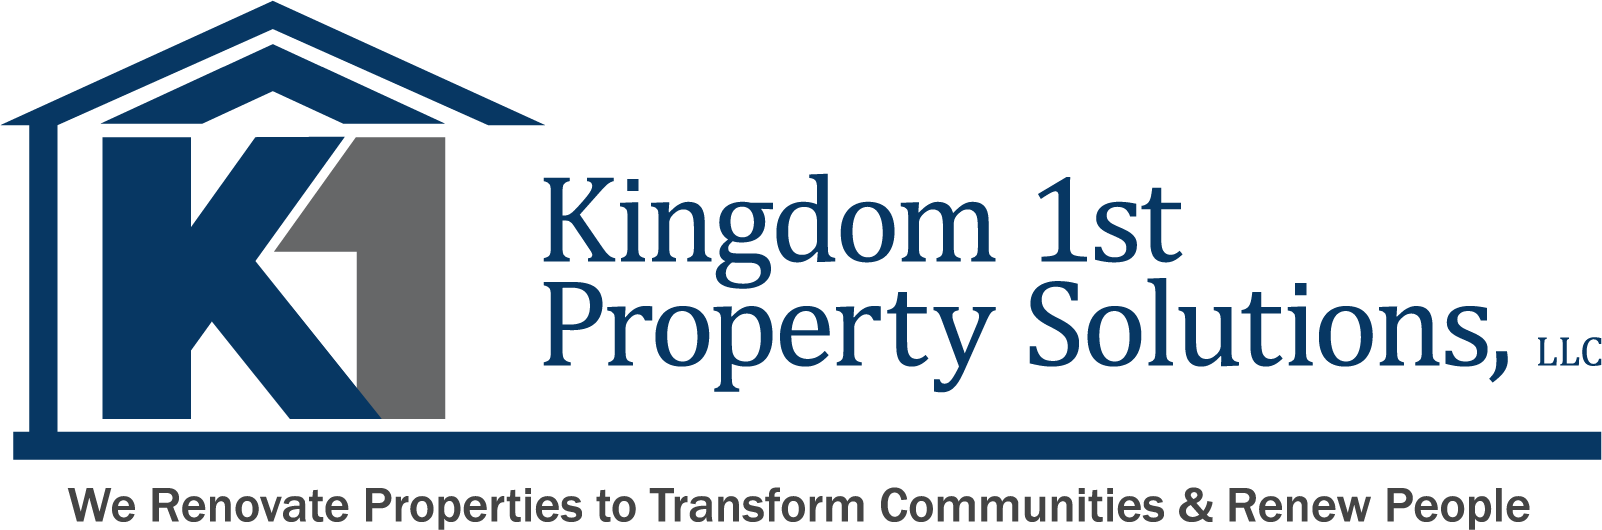 Kingdom 1st Property Solutions